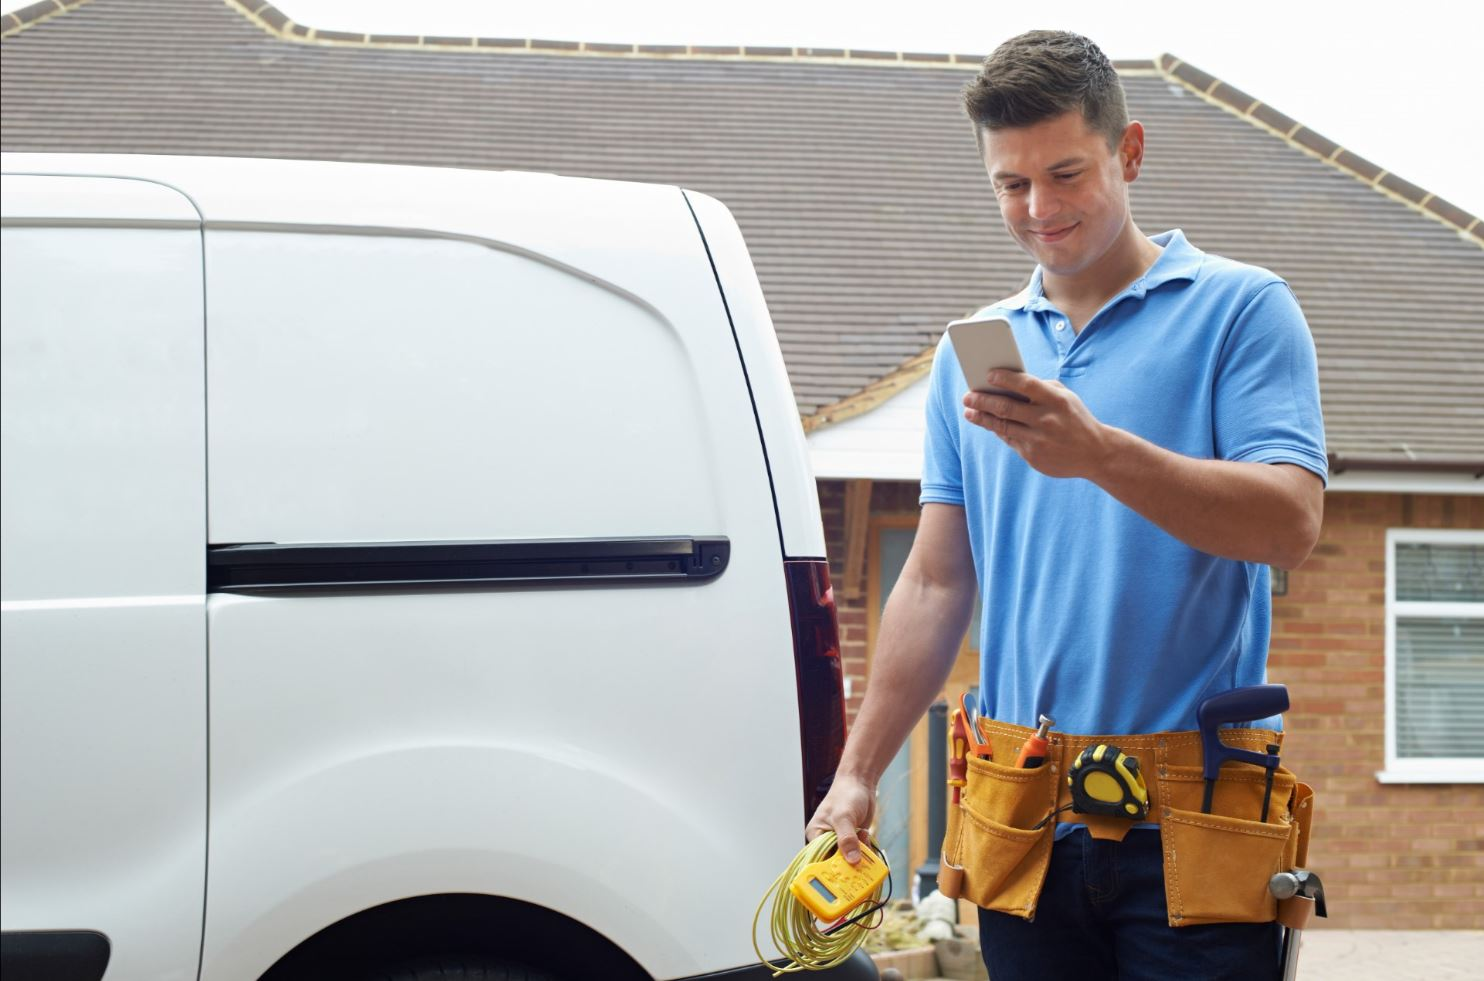 Tradesman looking at his mobile phone smiling.-1